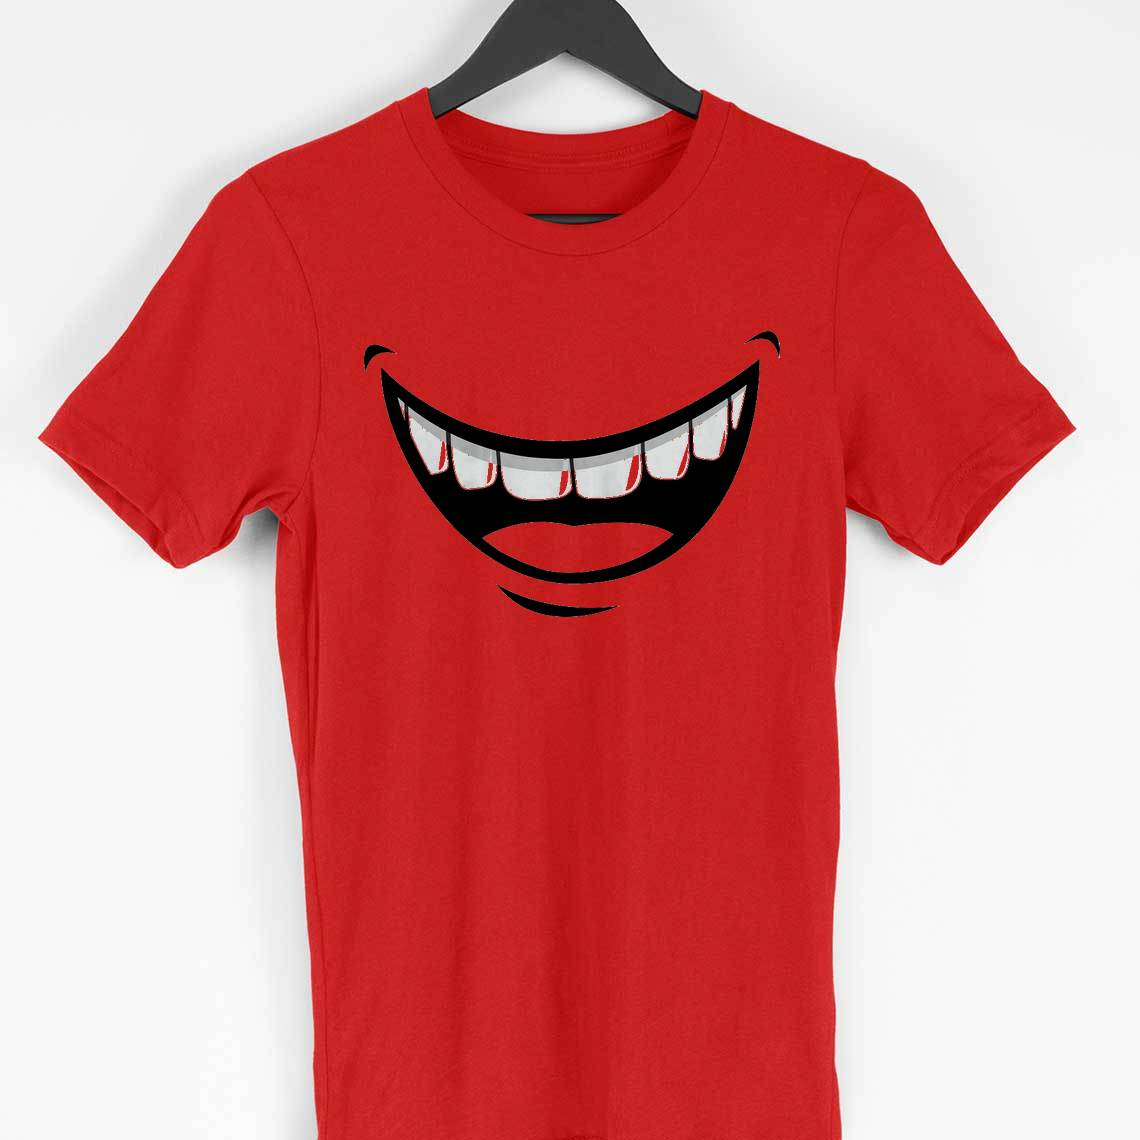 zomato delivery guy smile t-shirt